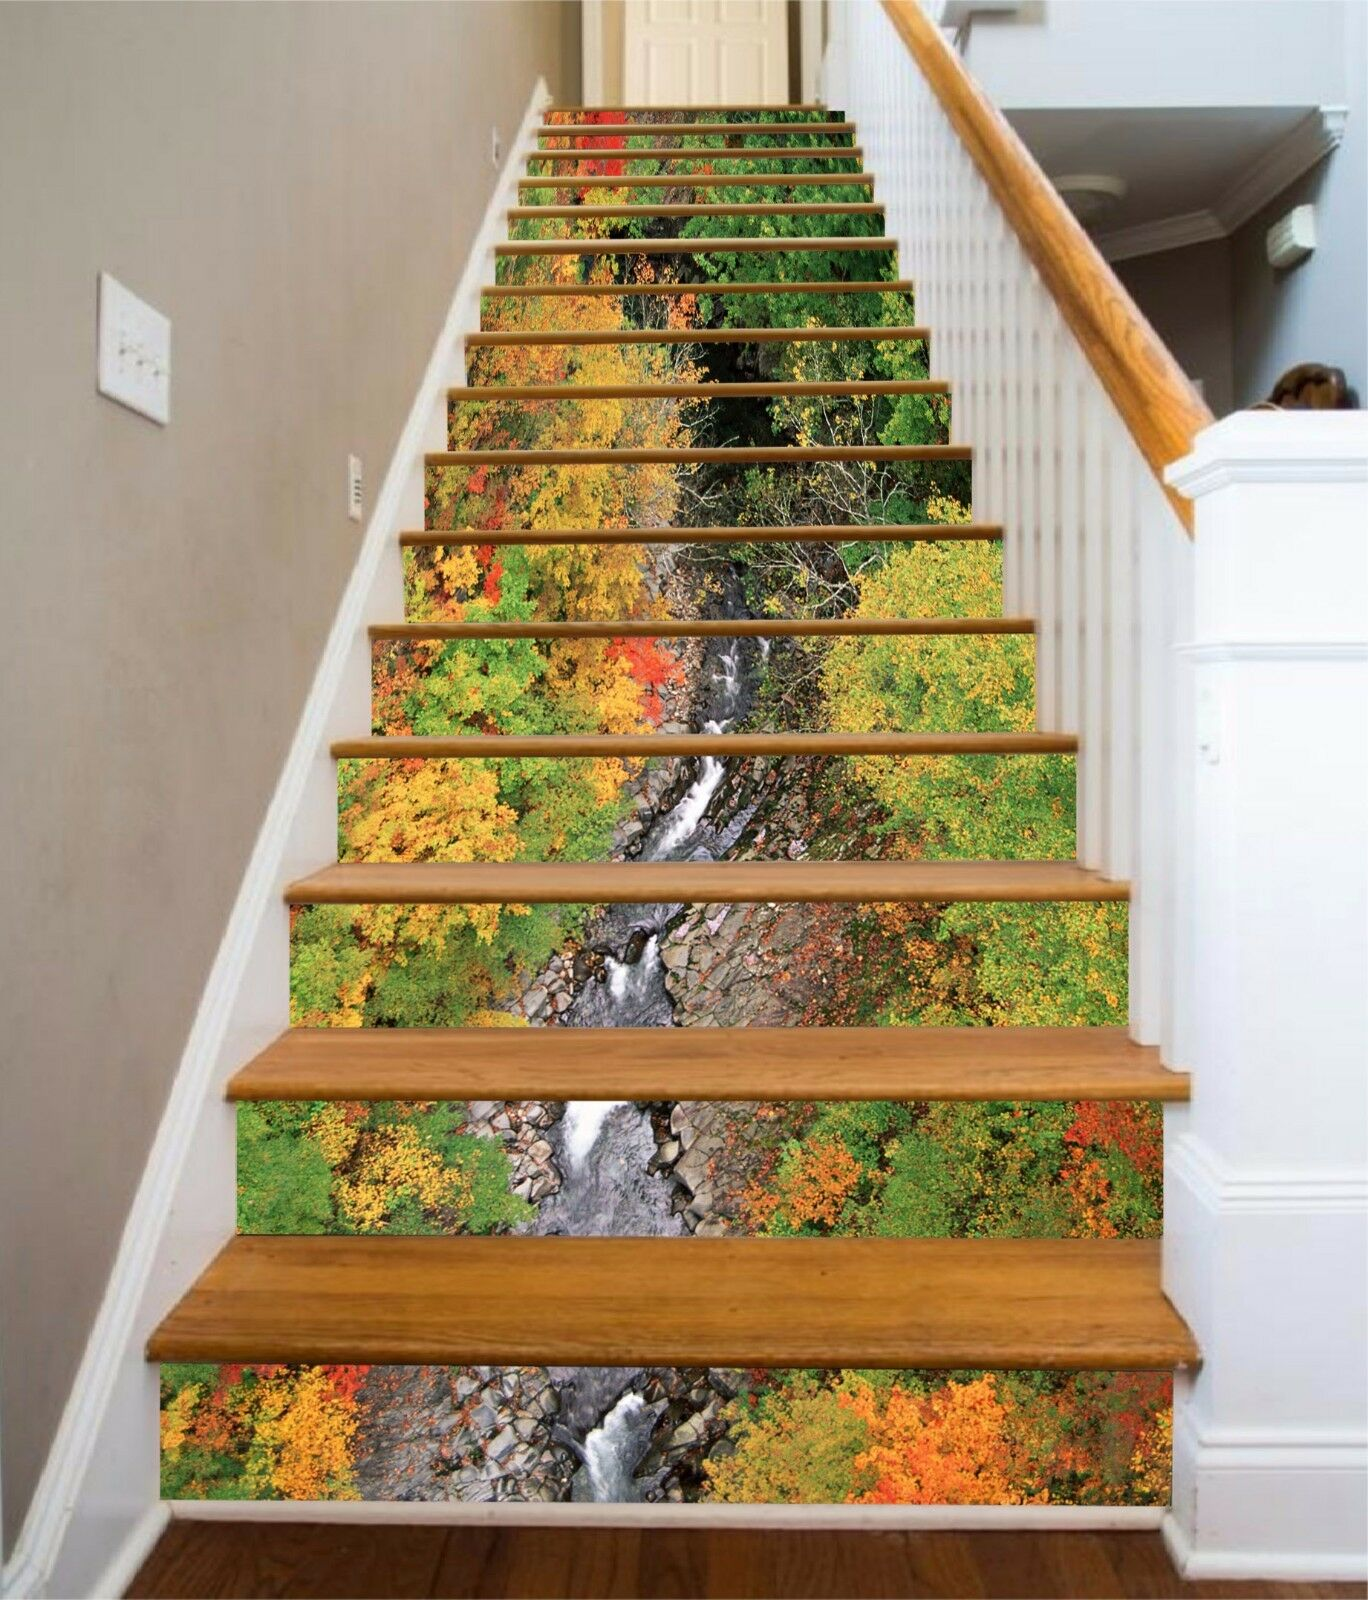 3D Autumn tree 37 Stair Risers Decoration Photo Mural Vinyl Decal Wallpaper UK